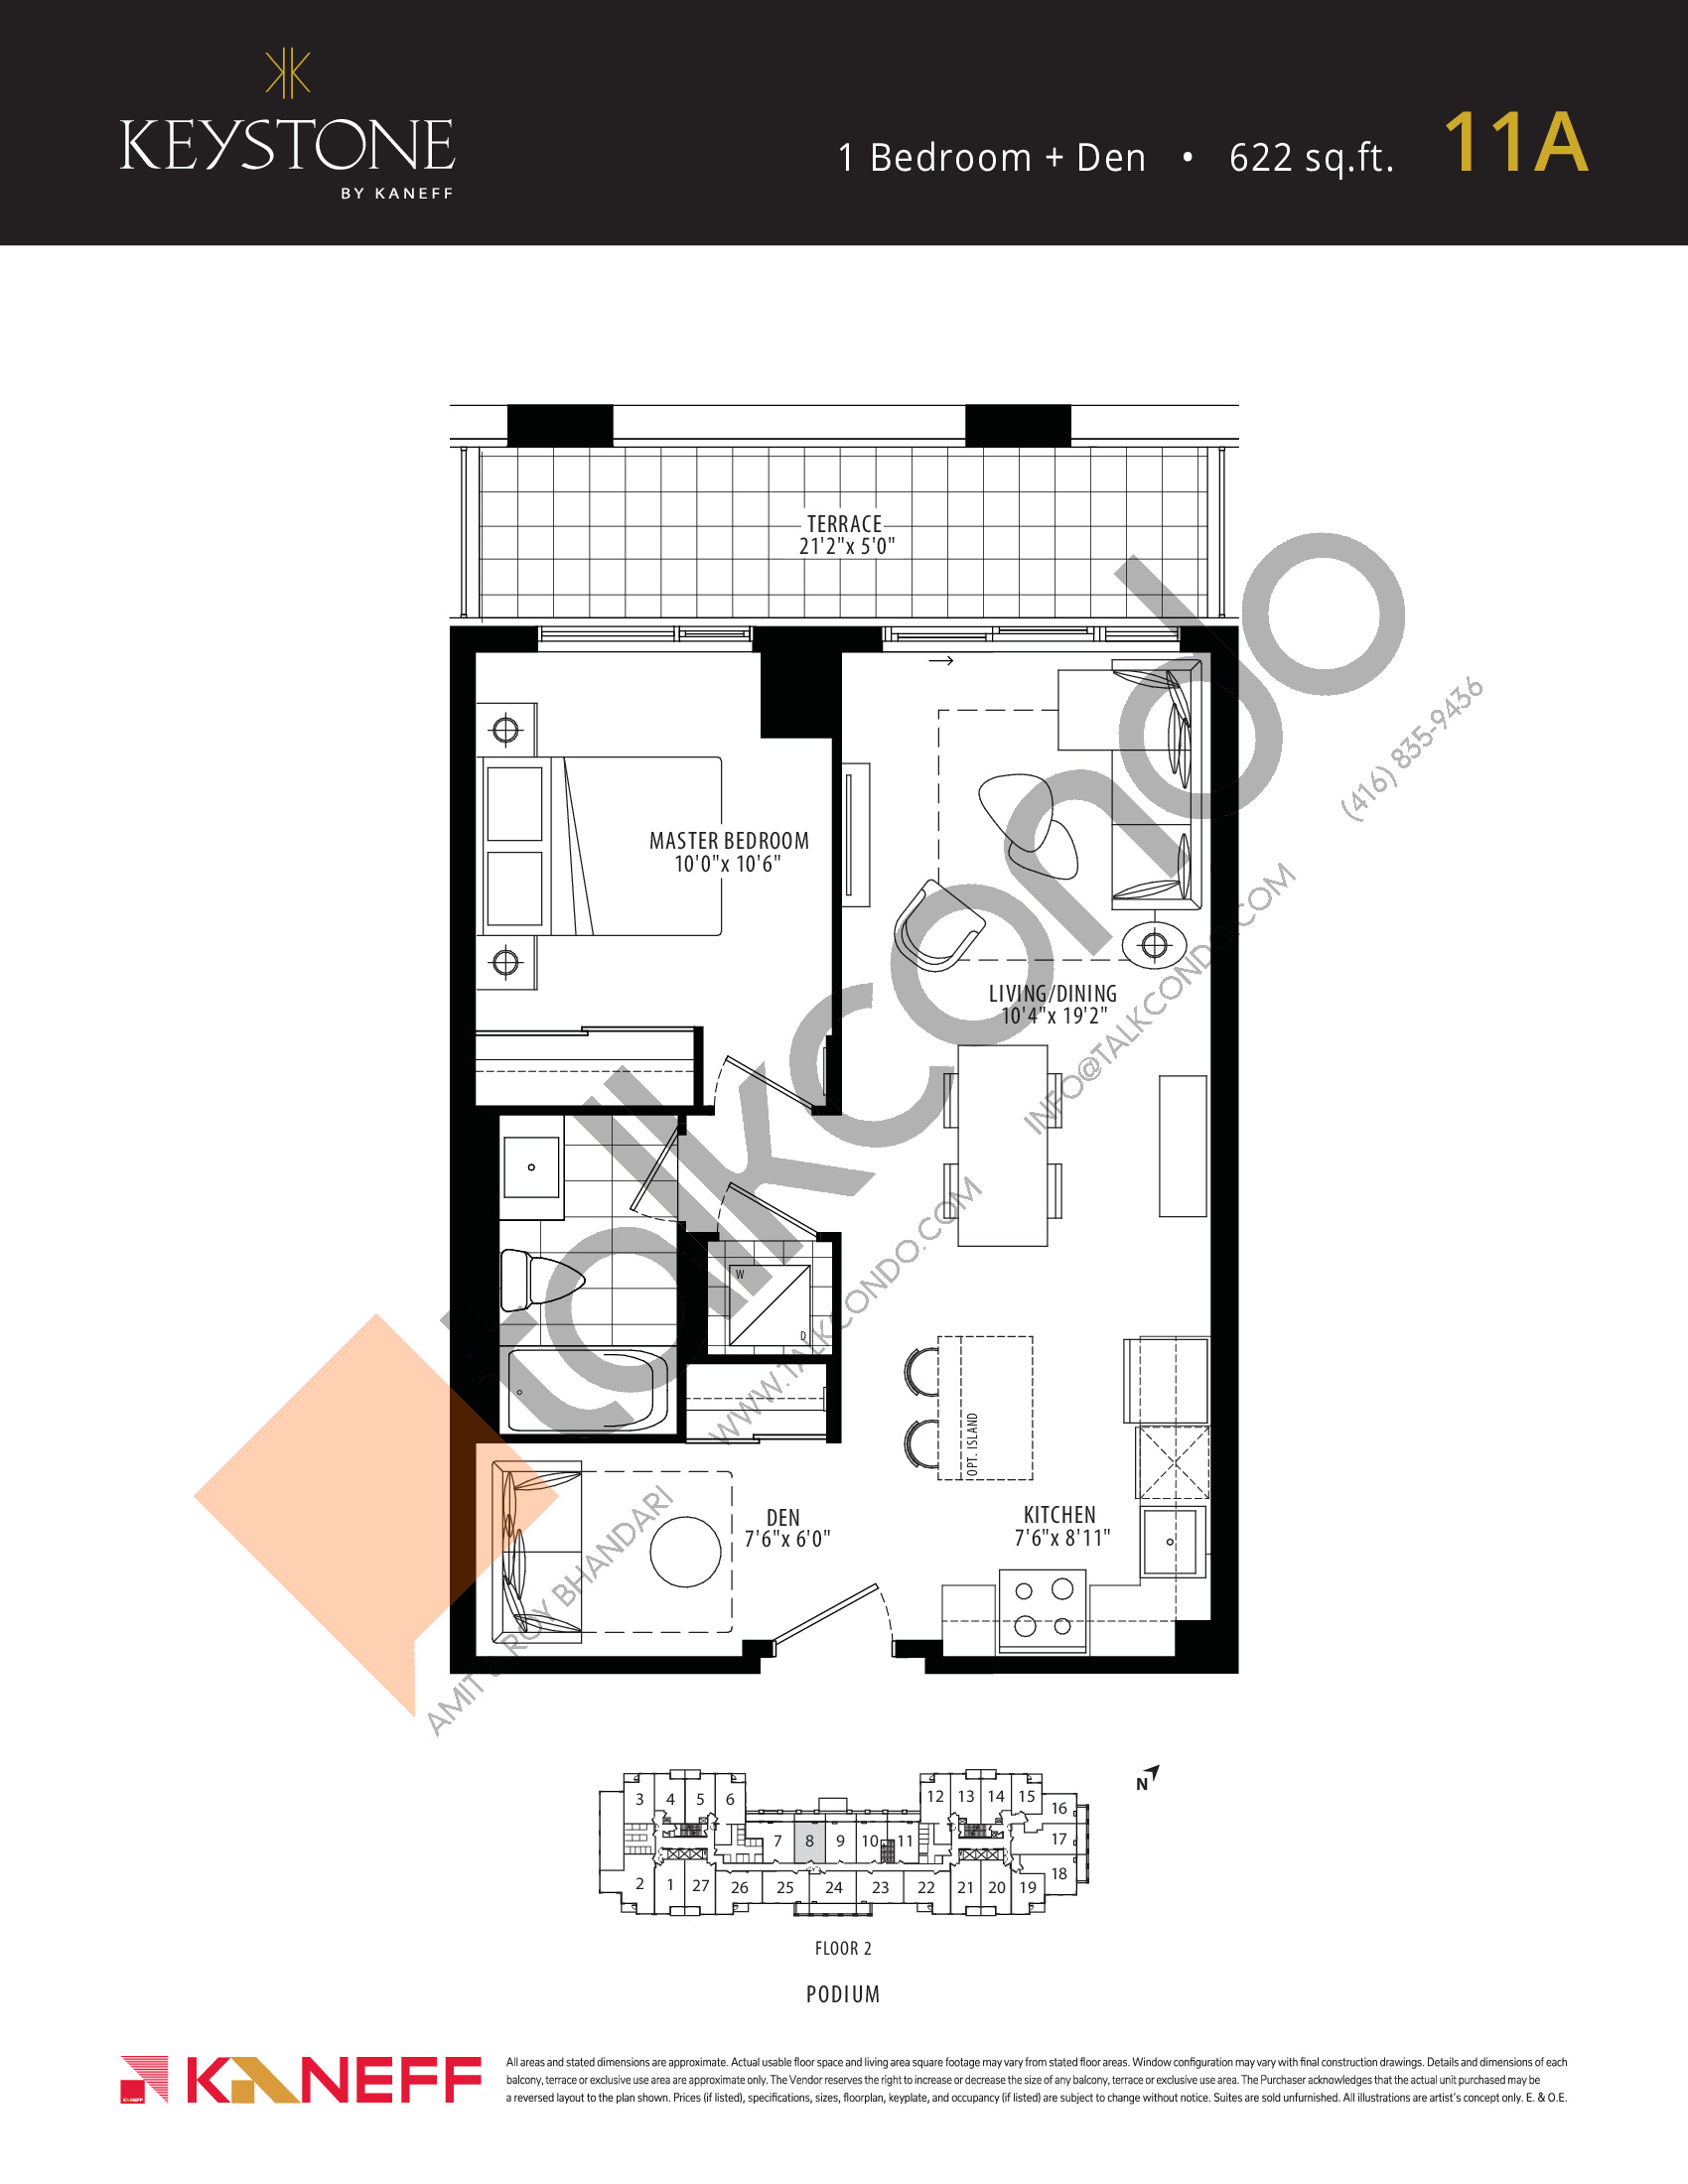 11A Floor Plan at Keystone Condos Phase 2 - 622 sq.ft